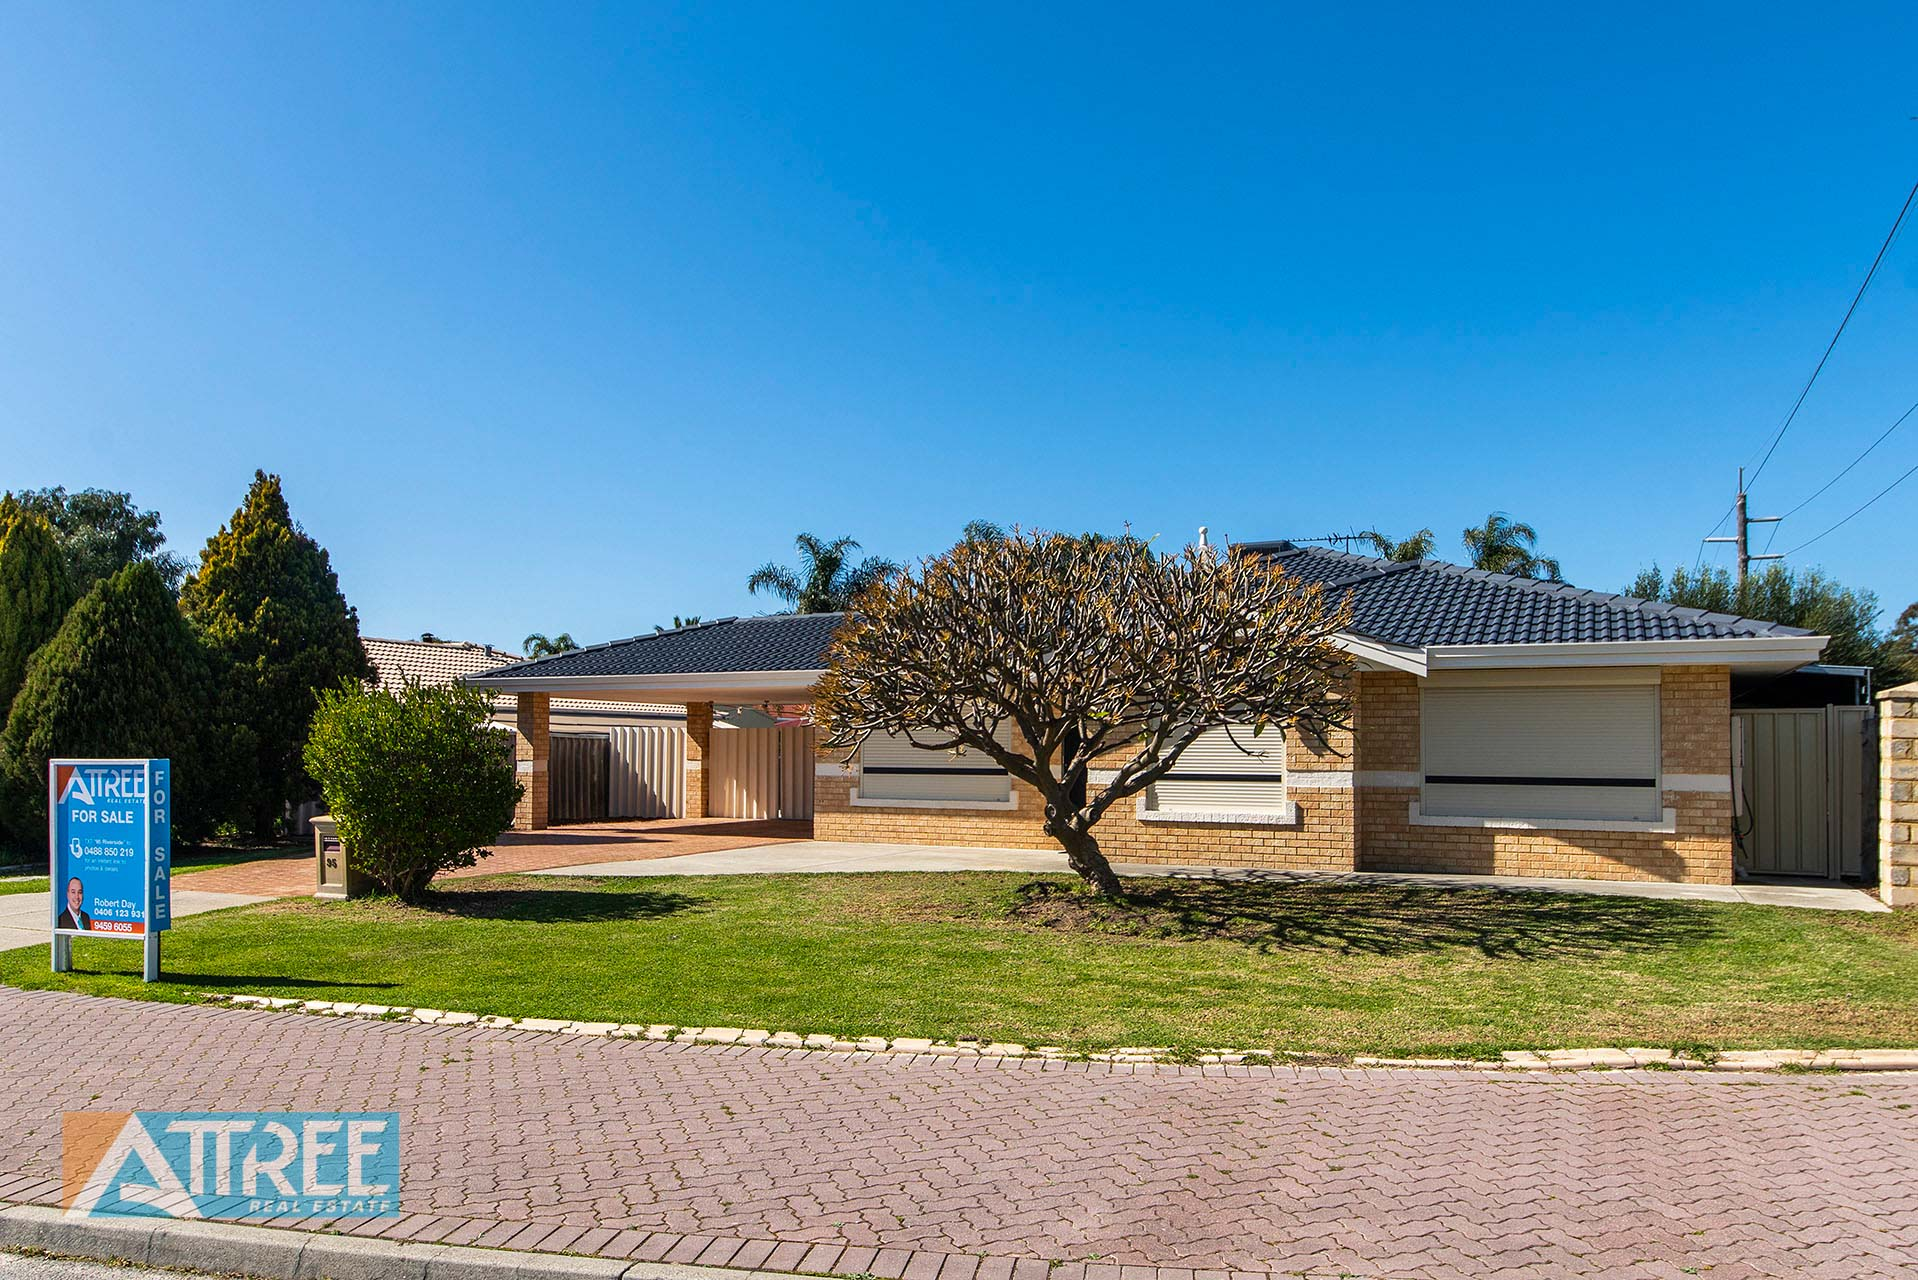 Property for sale in SEVILLE GROVE, 95 Riverside Lane : Attree Real Estate